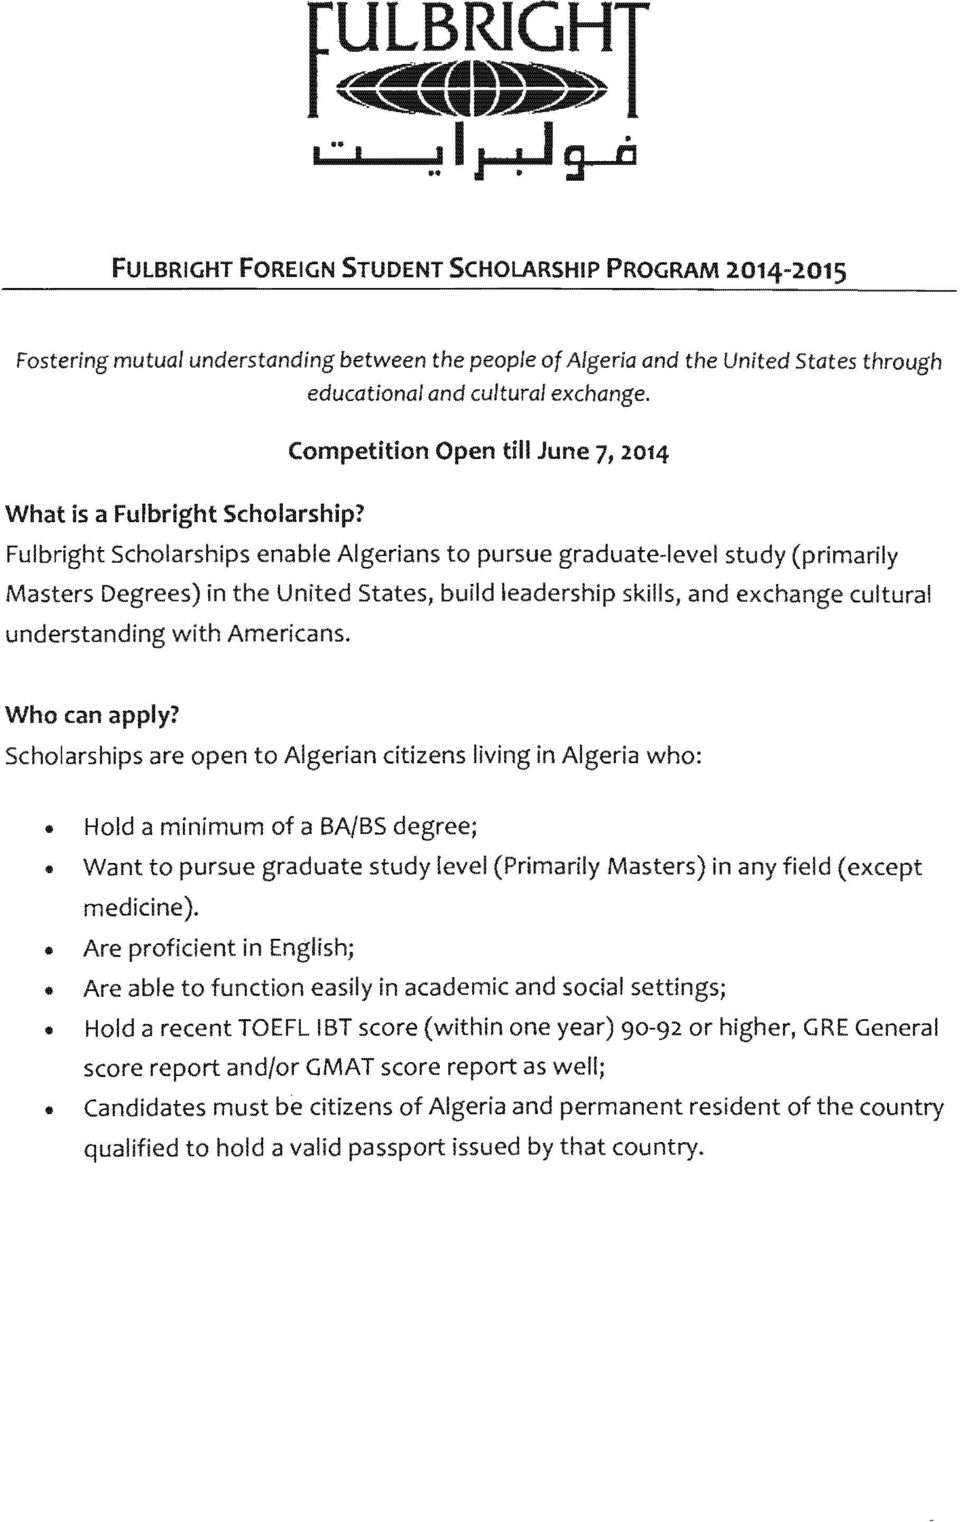 Scholarships are to Algerian citizens living in Algeria who:.. Hold a minimum a BA/BS degree;.. Want to graduate study level (Primarily Masters) in any (except medicine)... Are in English;.